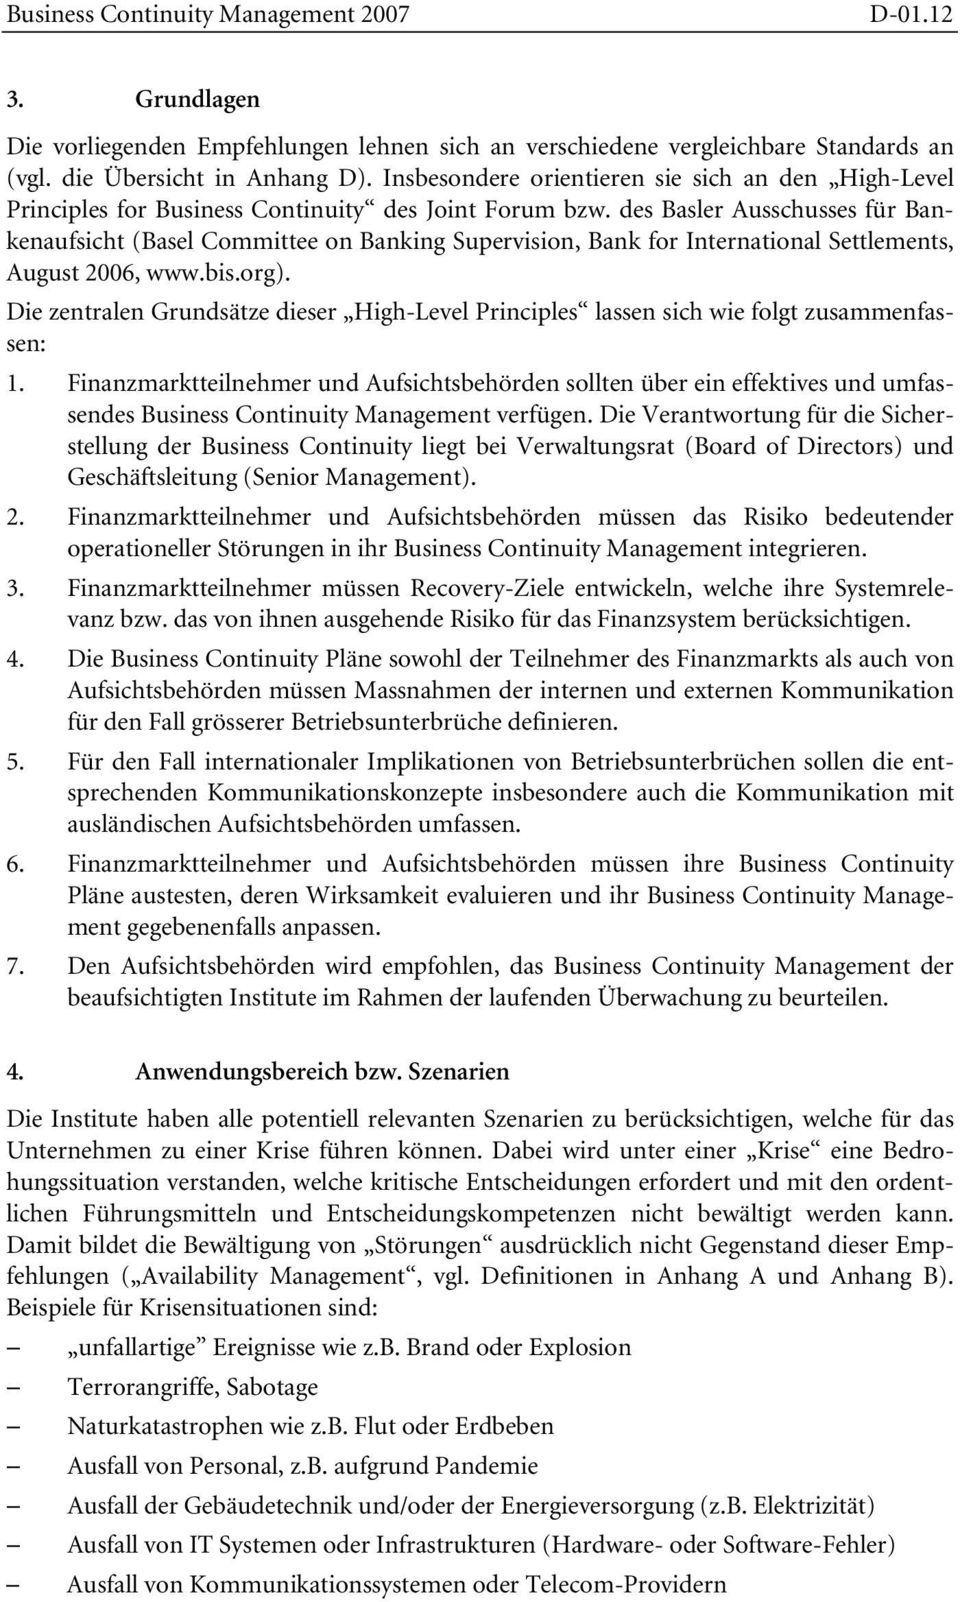 des Basler Ausschusses für Bankenaufsicht (Basel Committee on Banking Supervision, Bank for International Settlements, August 2006, www.bis.org).